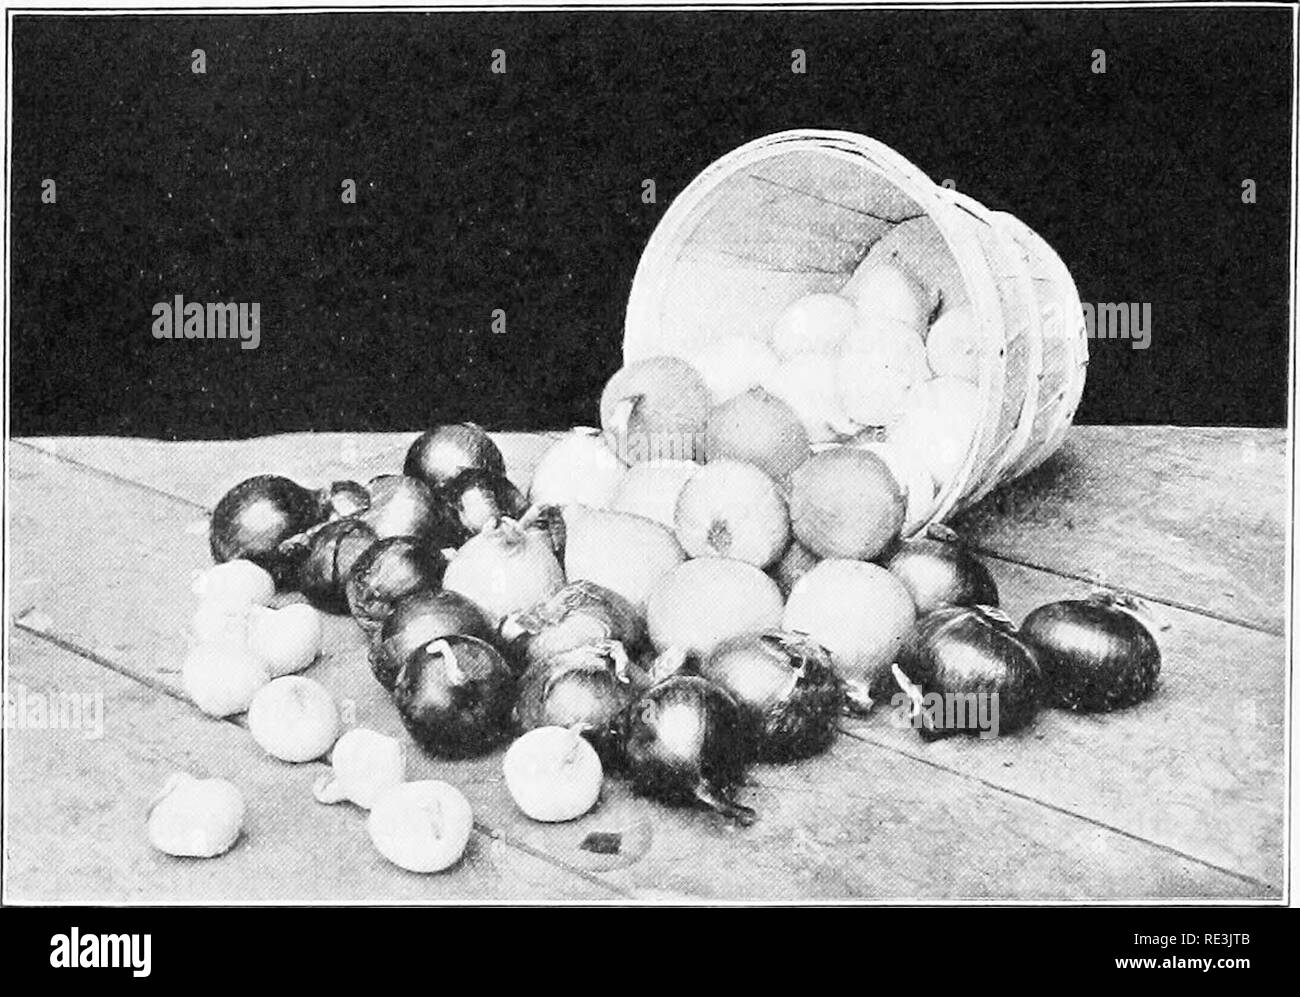 . Vegetable growing projects. Vegetable gardening; Project method in teaching. 232 VEGETABLE GROWING PROJECTS 1. What are the most favorable soil conditions for the growing of onions? W-VG:384. L:163. C: 310.. 2. What types of soil should be chosen, if possible, for the growing of onions? W-VG : 384. L : 163. C : 310.. Fig. 59. — A basket of onions suitable for exhibition purposes. Different color bulbs should not be displayed together. 3. What climatic conditions does the onion prefer ? W-VG : 383. L: 162. • 4. Where is this crop most largely grown for commercial purposes? C: 310. 5. What can Stock Photo